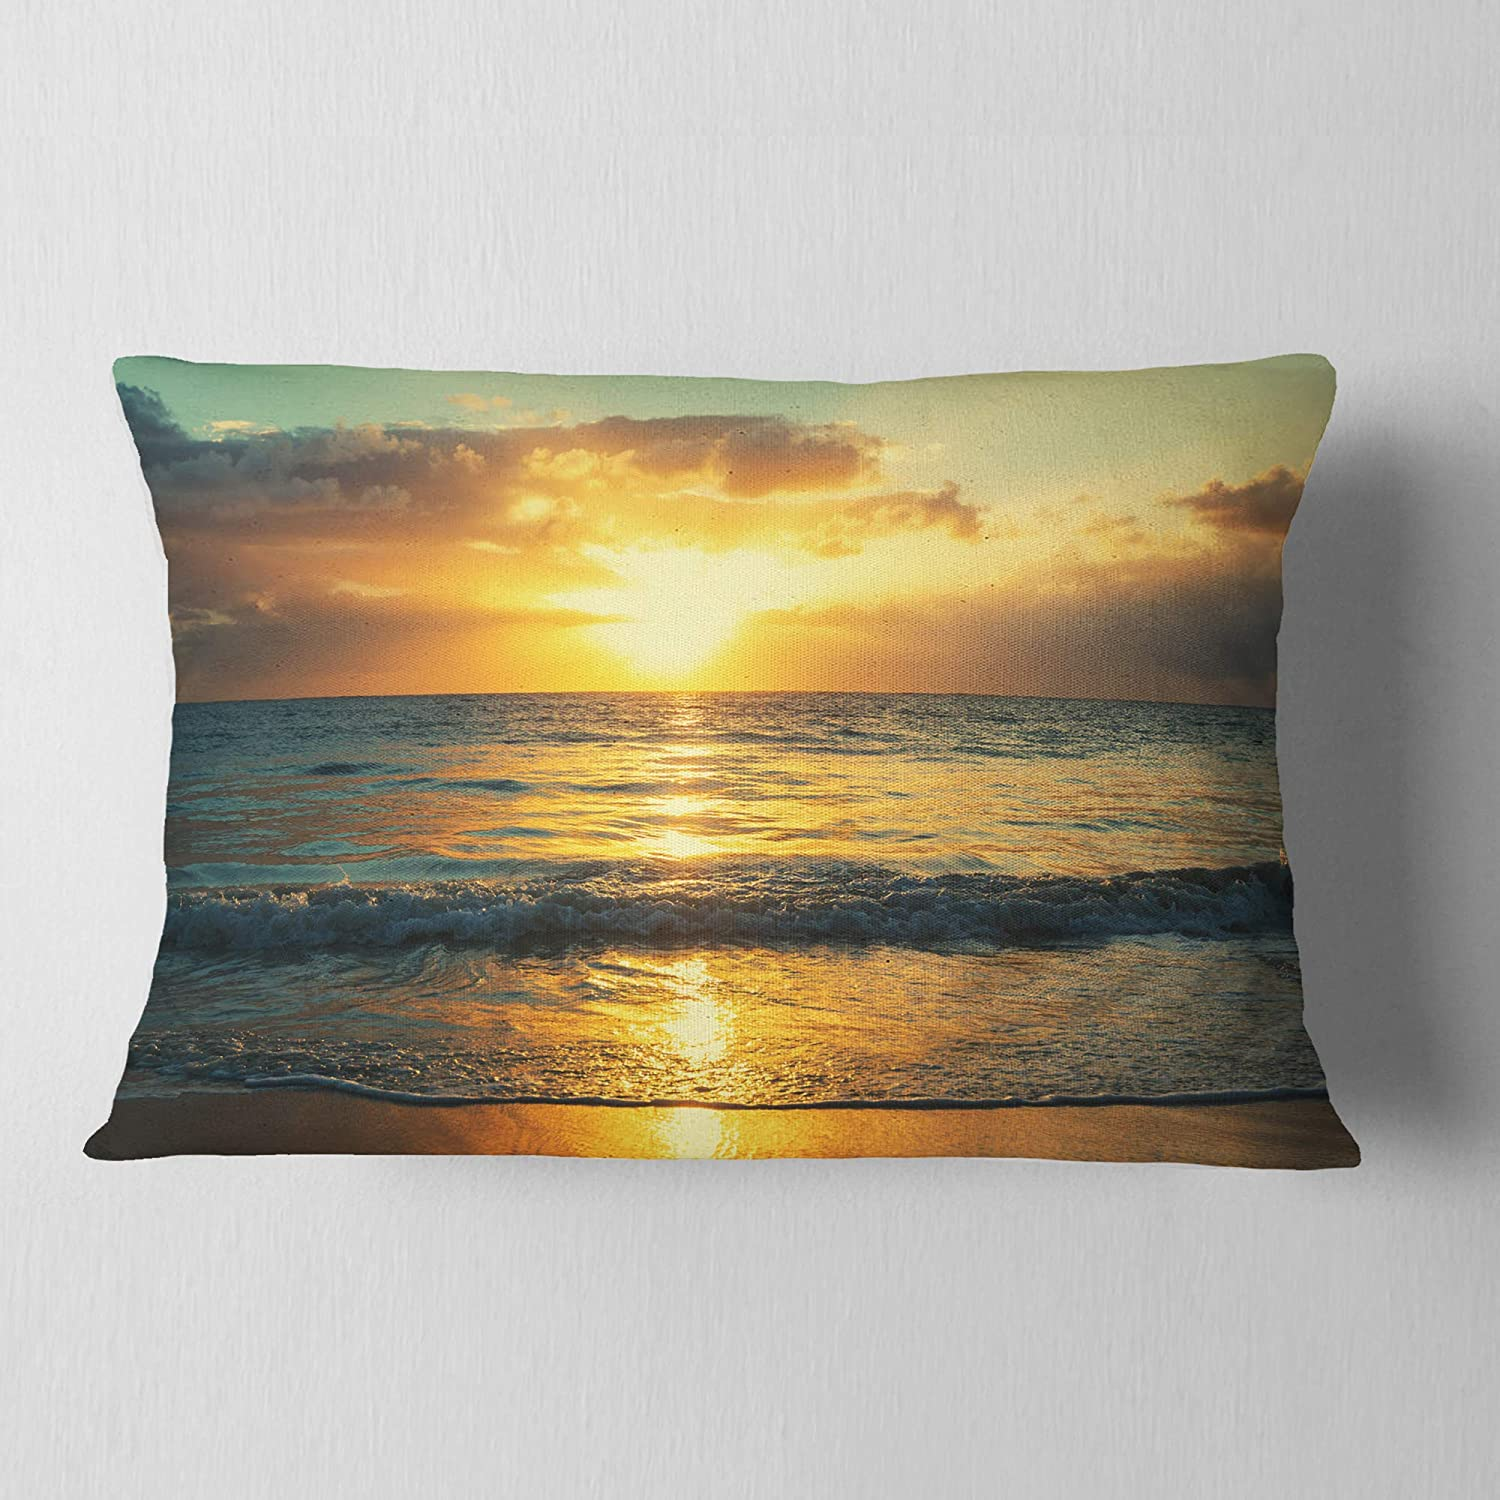 Sofa Throw Pillow 12 In Insert Printed On Both Side X 20 In In Designart Cu10867 12 20 Exotic Water And Sky Sunset Panorama Modern Seashore Lumbar Cushion Cover For Living Room Throw Pillow